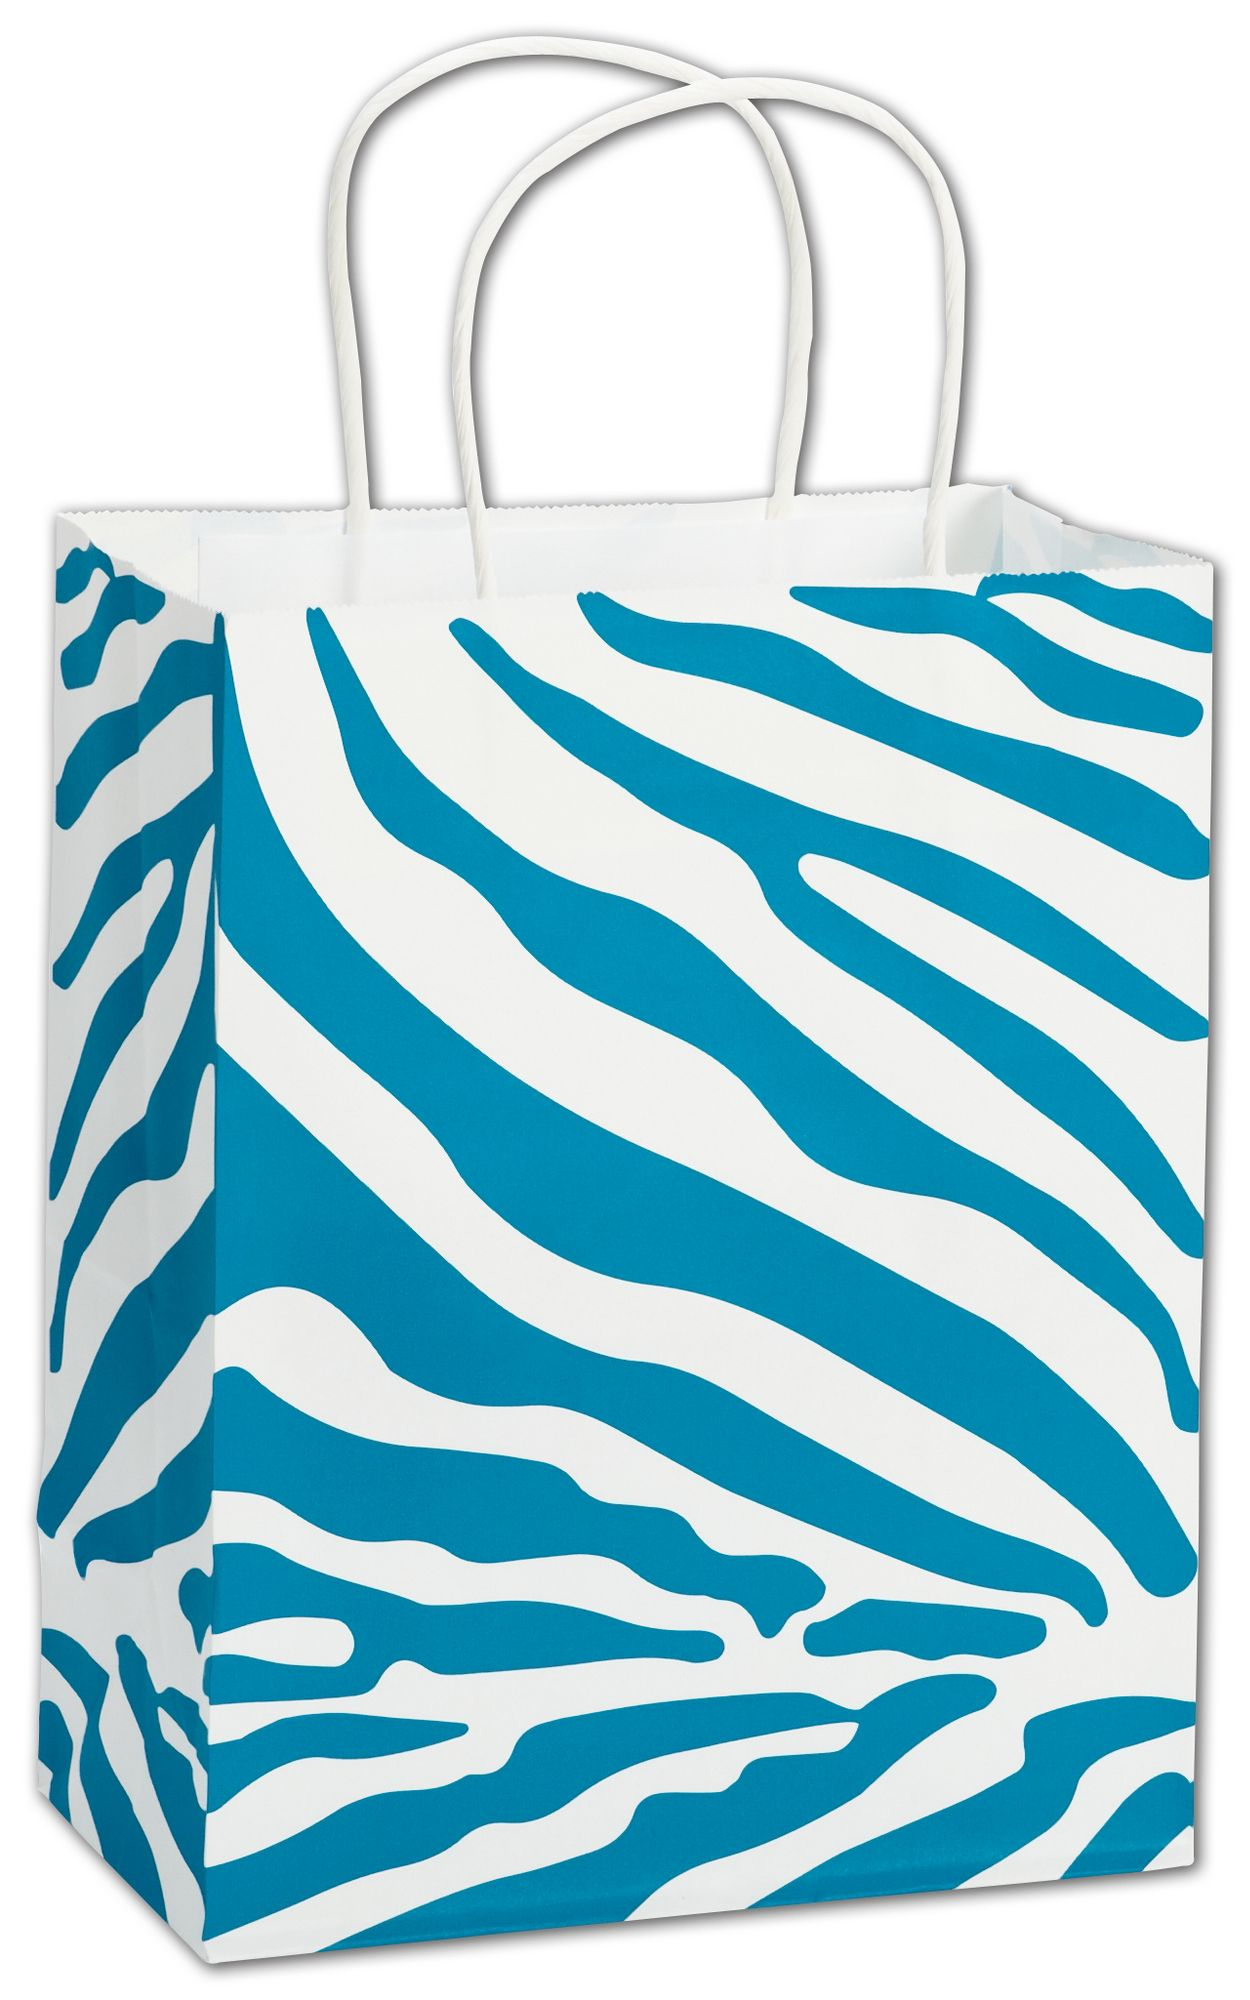 This sturdy Paper Shopping Bag with a  Turquoise Zebra Print makes wrapping or gift giving fun.